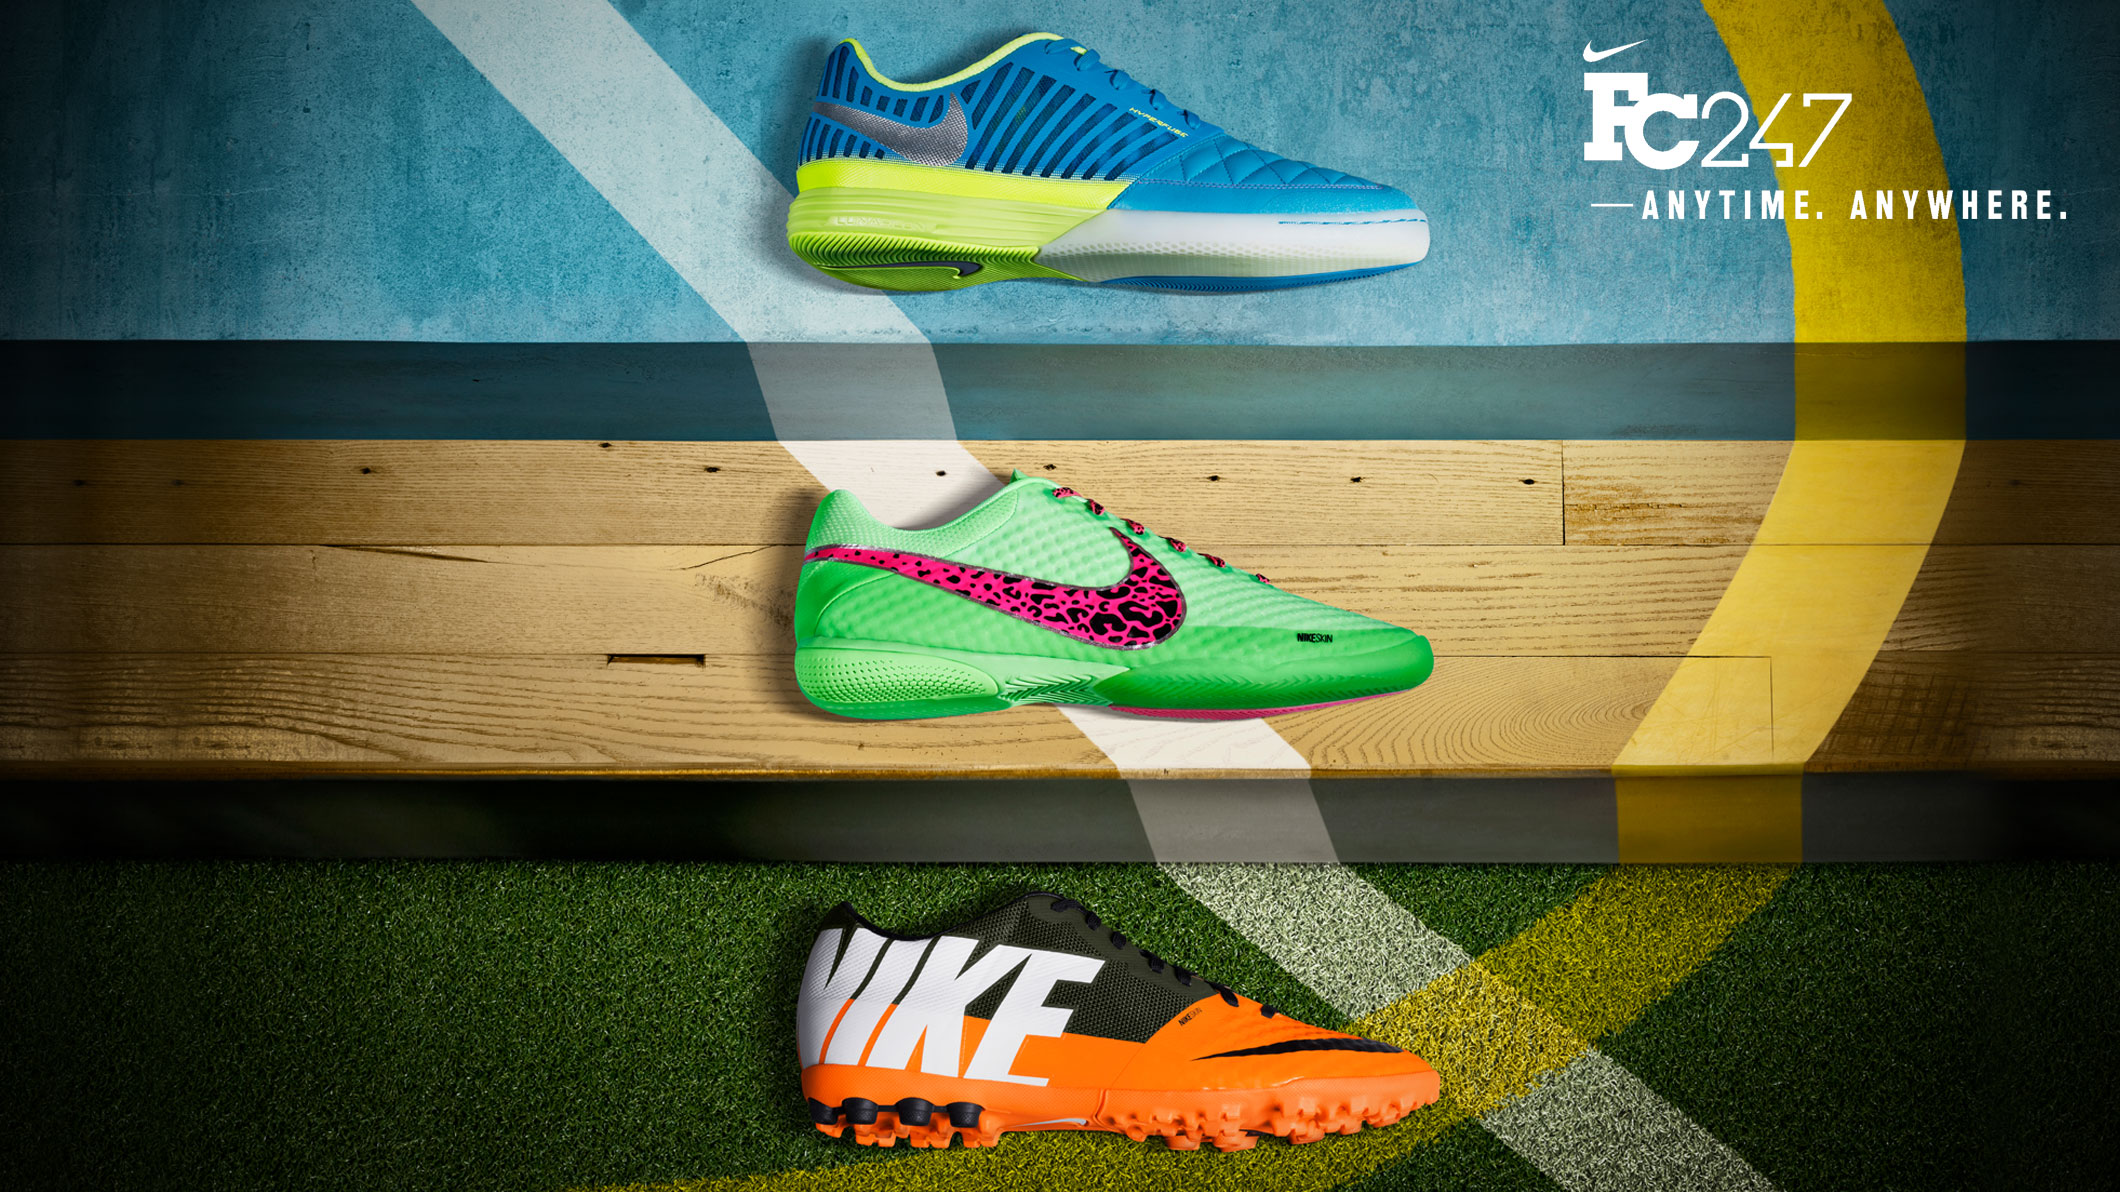 Nike Release the FC247 Collection, Update Nike5 Elastico, Bomba, and Lunar Gato